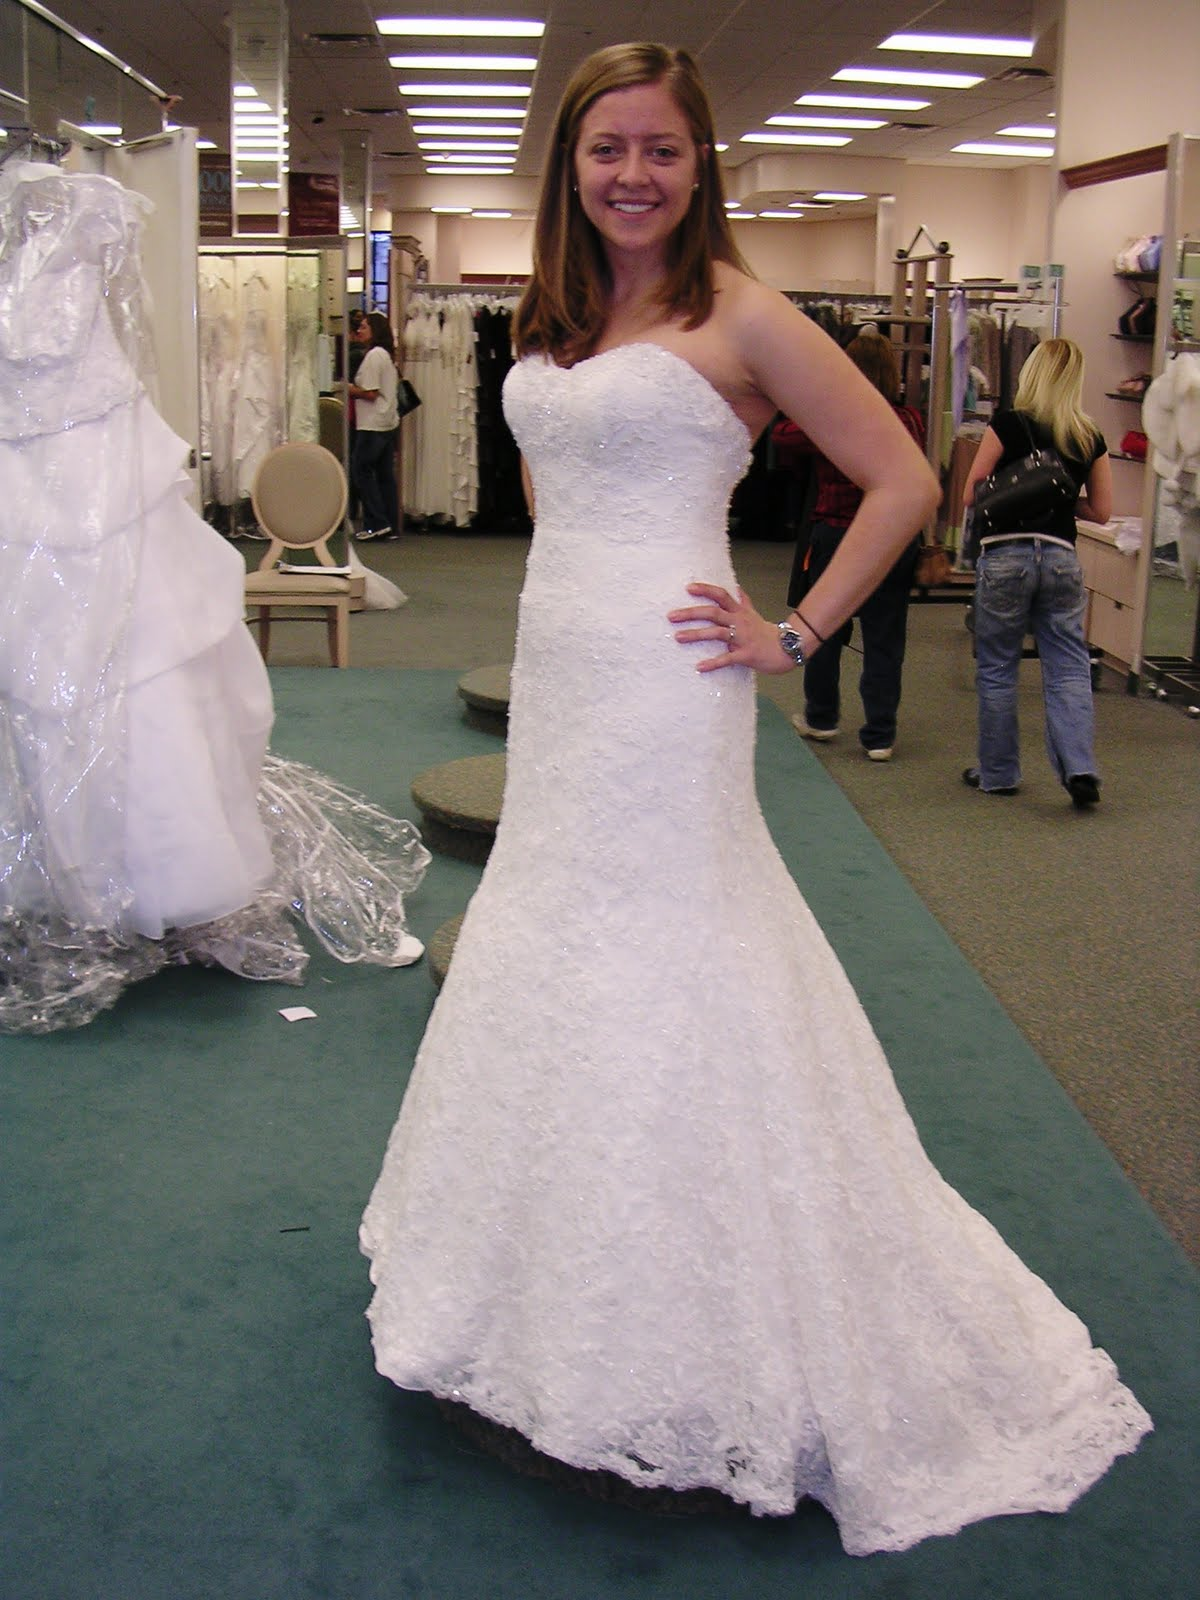 Find out all 2 David's Bridal outlet stores in 2 state(s). Get store locations, business hours, phone numbers and more. Save money on Tuxedos, Wedding Dresses, Bridal Gowns, Bridesmaid Dresses, Prom Dresses & Accessories/5(93).